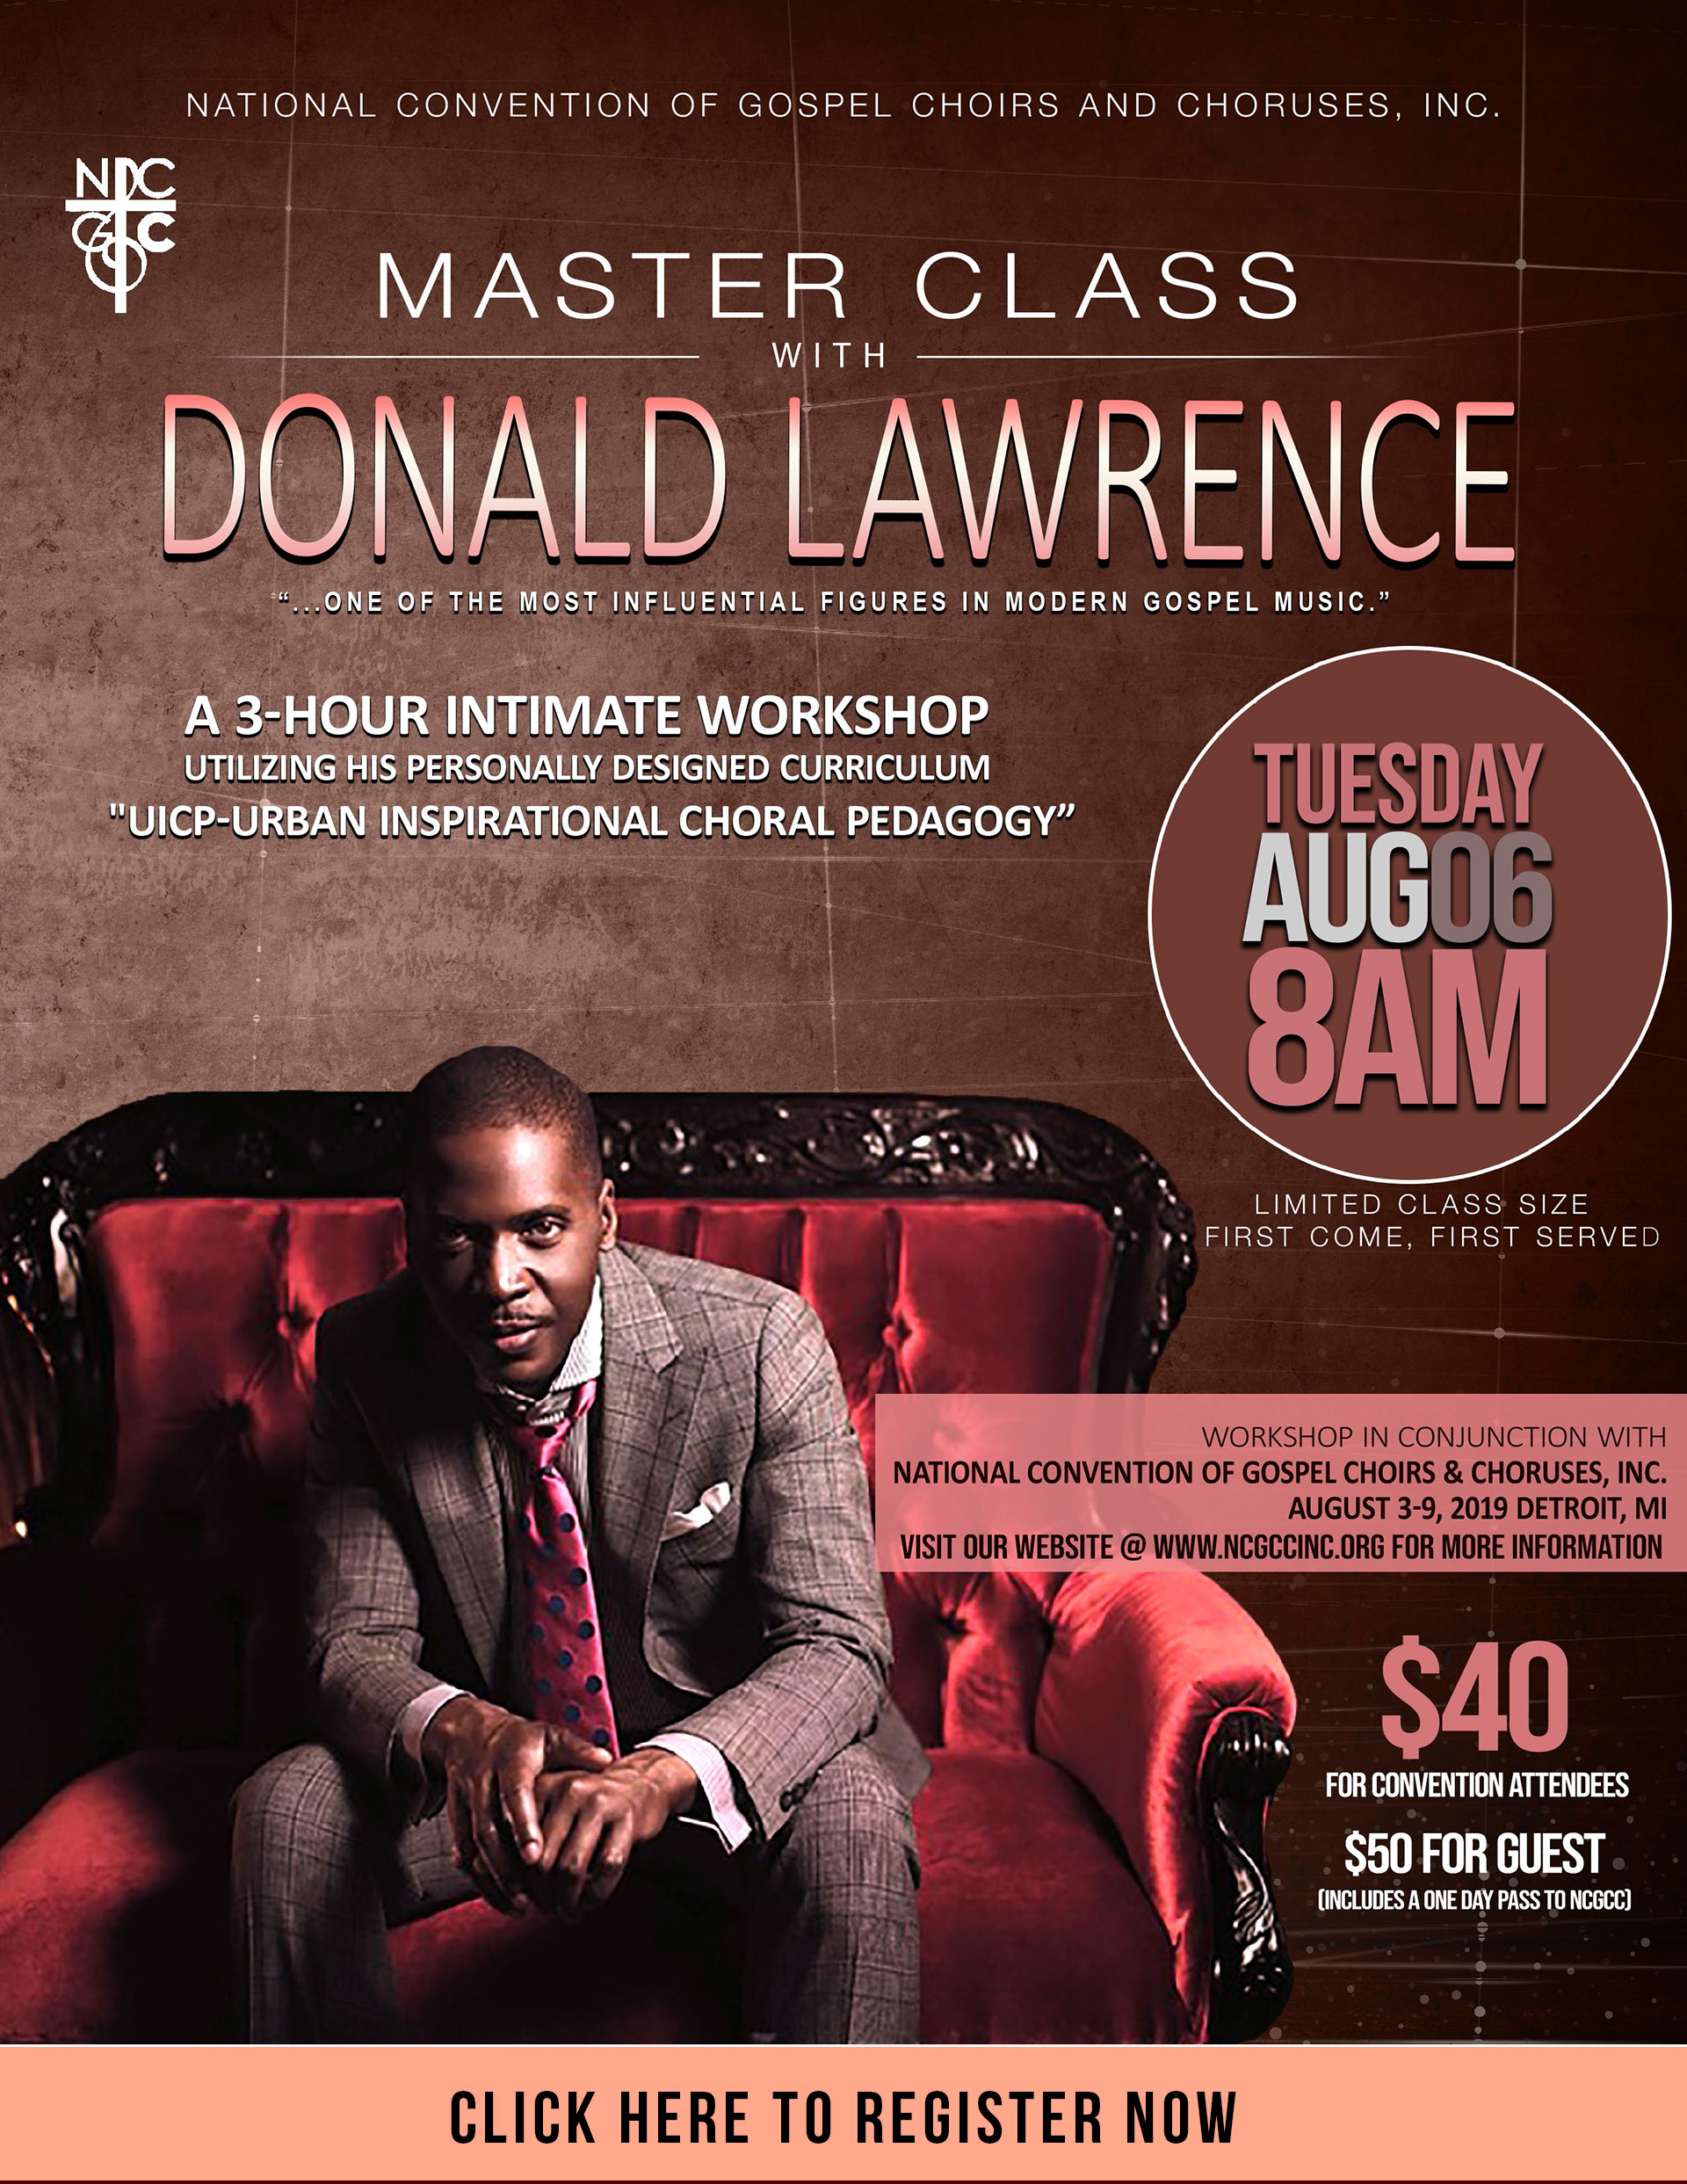 NCGCC Master Class with Donald Lawrence